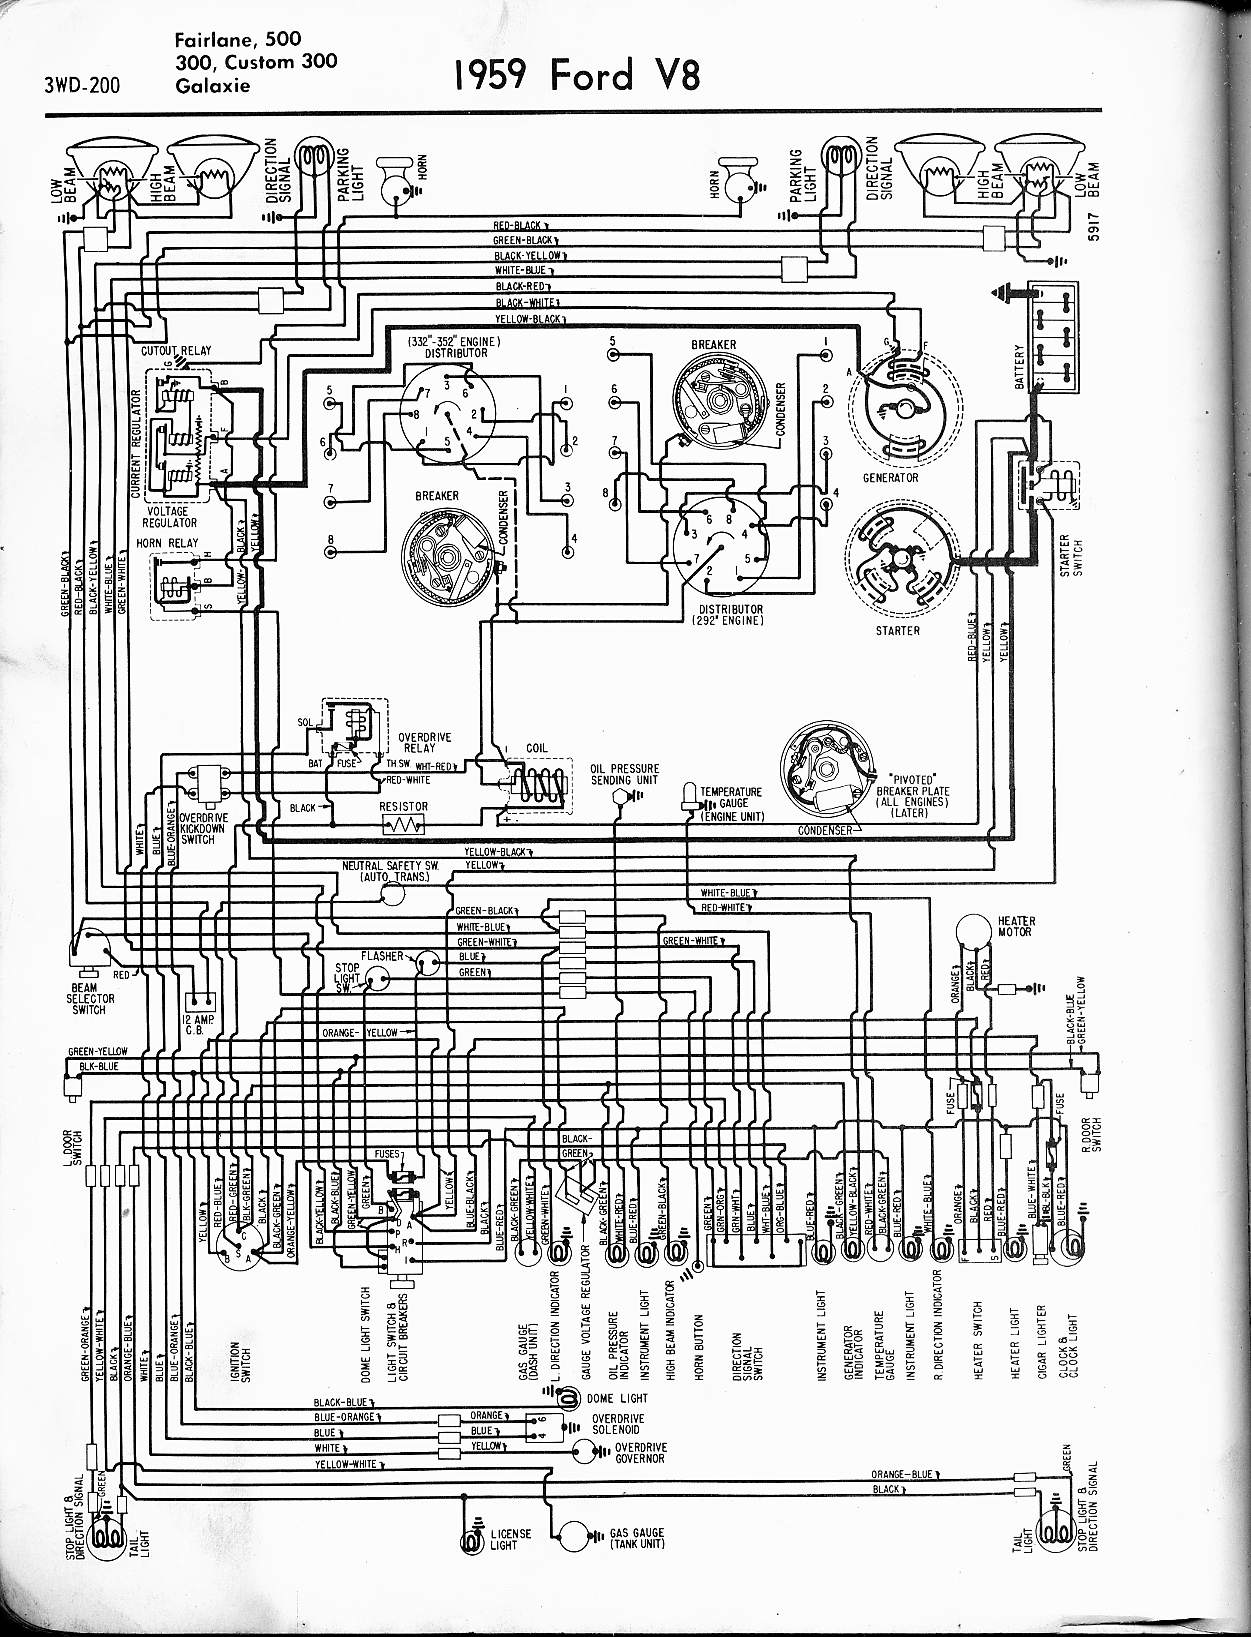 turn signal wiring diagram as well as 67 ford fairlane wiring Ford Econoline Wiring-Diagram Fuel 1967 ford econoline wiring diagram wiring diagram tutorial 61 67 ford econoline wiring diagrams wiring library